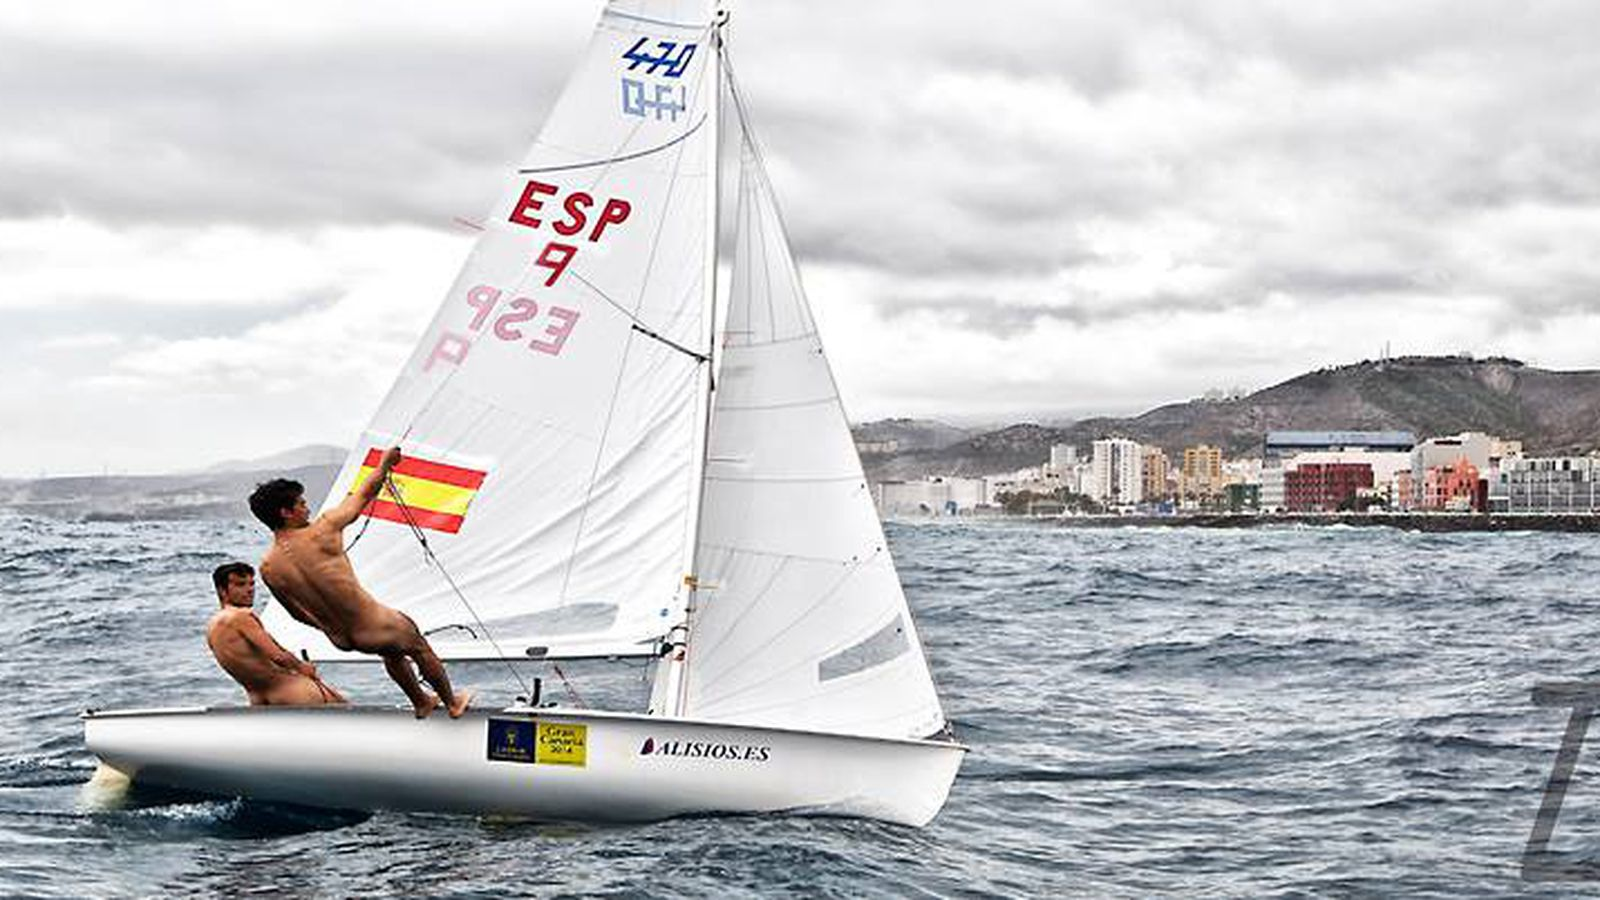 Spanish Olympic Sailor Hopefuls Pose Nude To Raise Profile - Outsports-8491